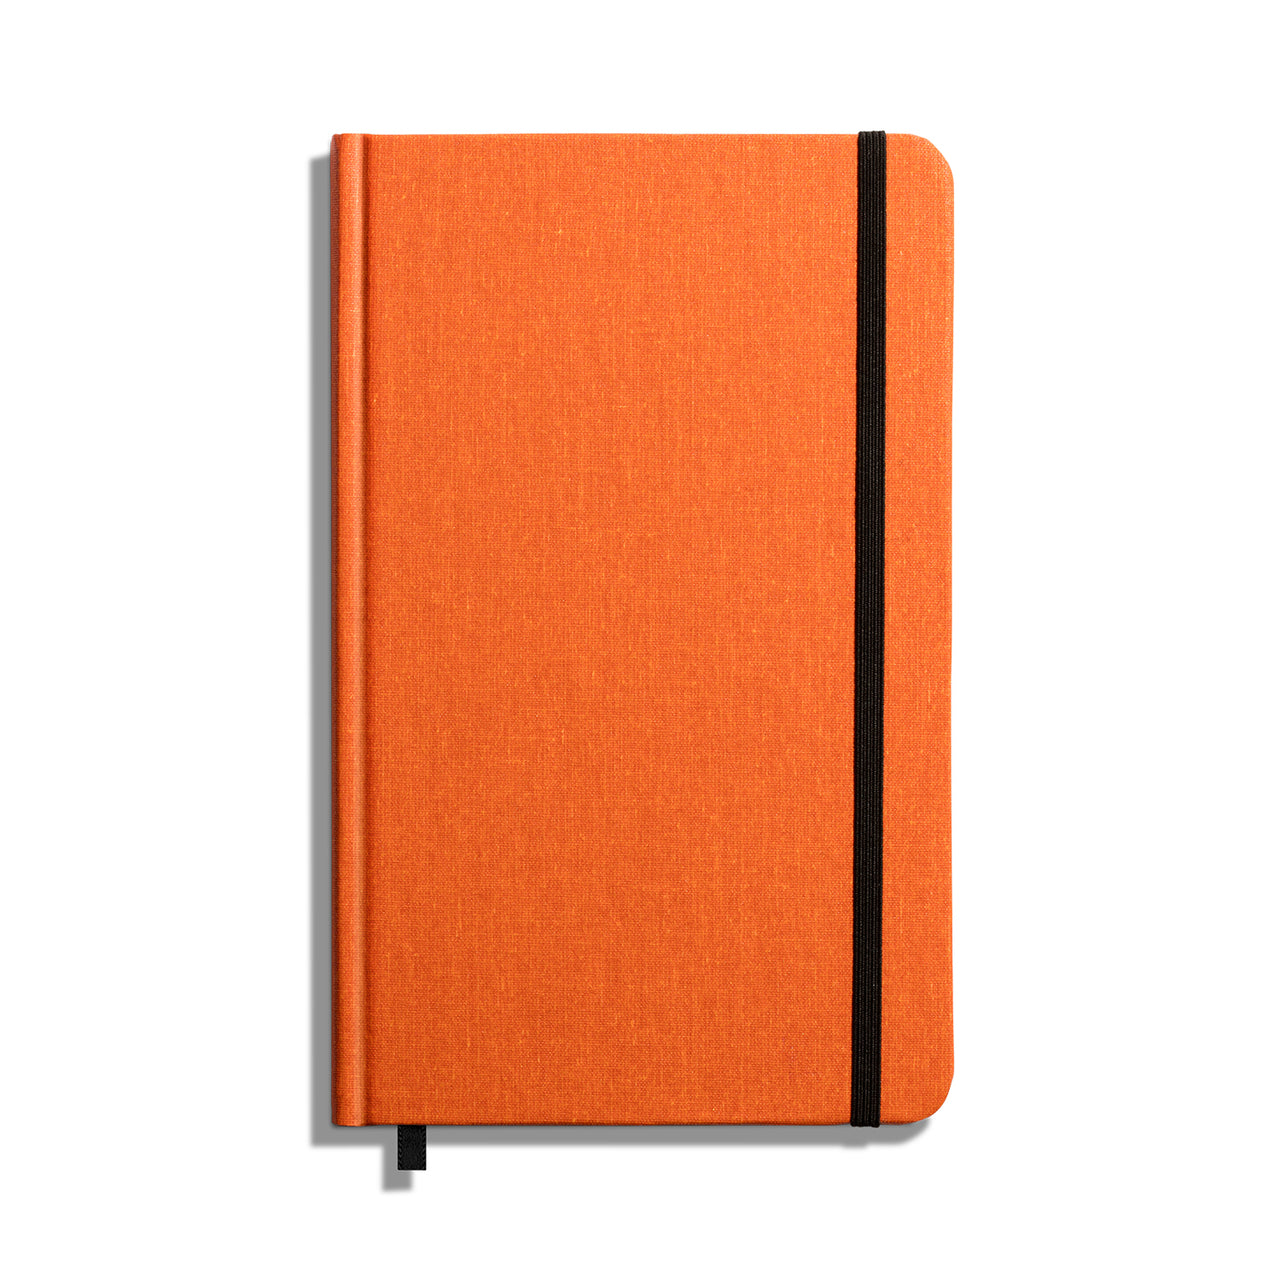 Shinola lined journal with bright, Sunset Orange color, hard linen cover, and lined pages. Best of all, it is American-made!